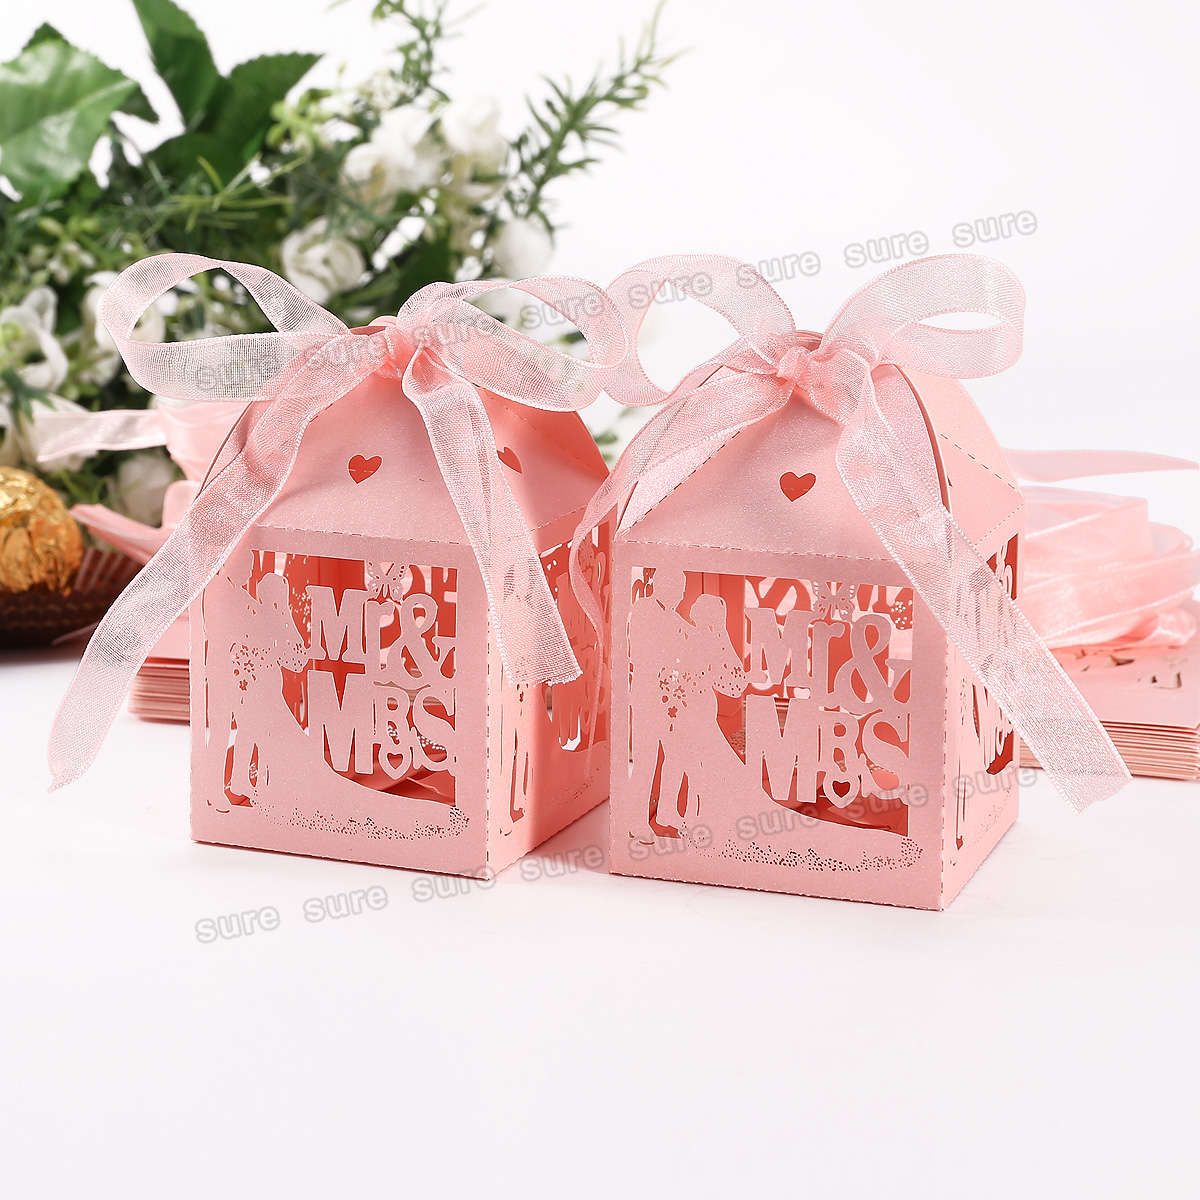 Wedding Favour Gift Boxes Uk : Wedding Party Engagement Specially Favor Boxes Mr&Mrs Laser Cut 4 Gift ...